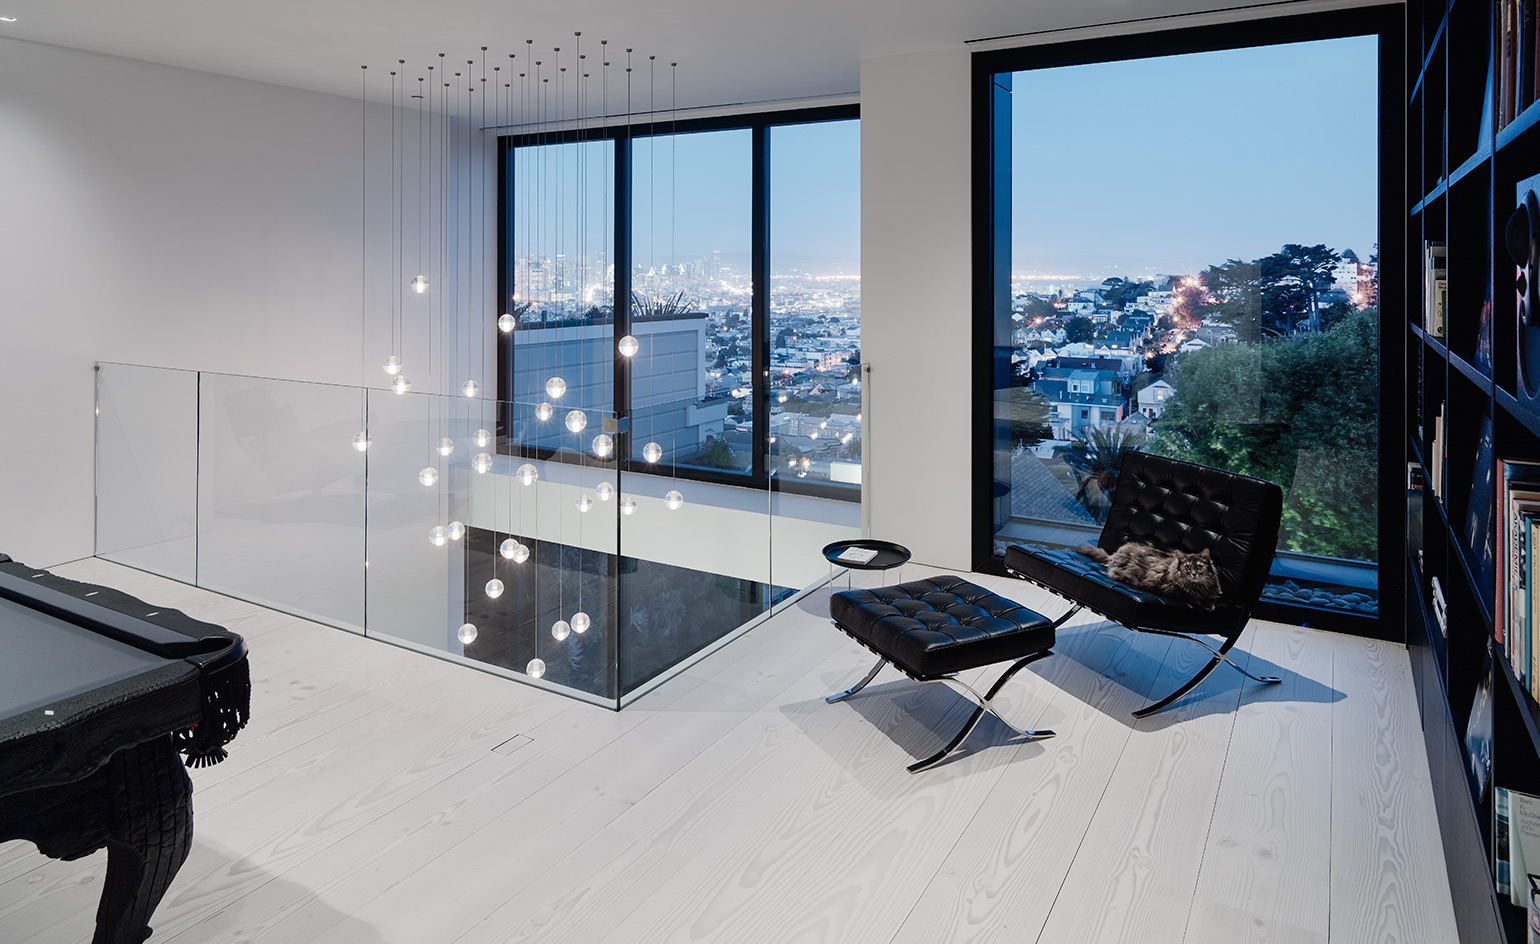 The top floor features a social area with a pool table and bookcases, the furniture is black and it contrasts white surroundings